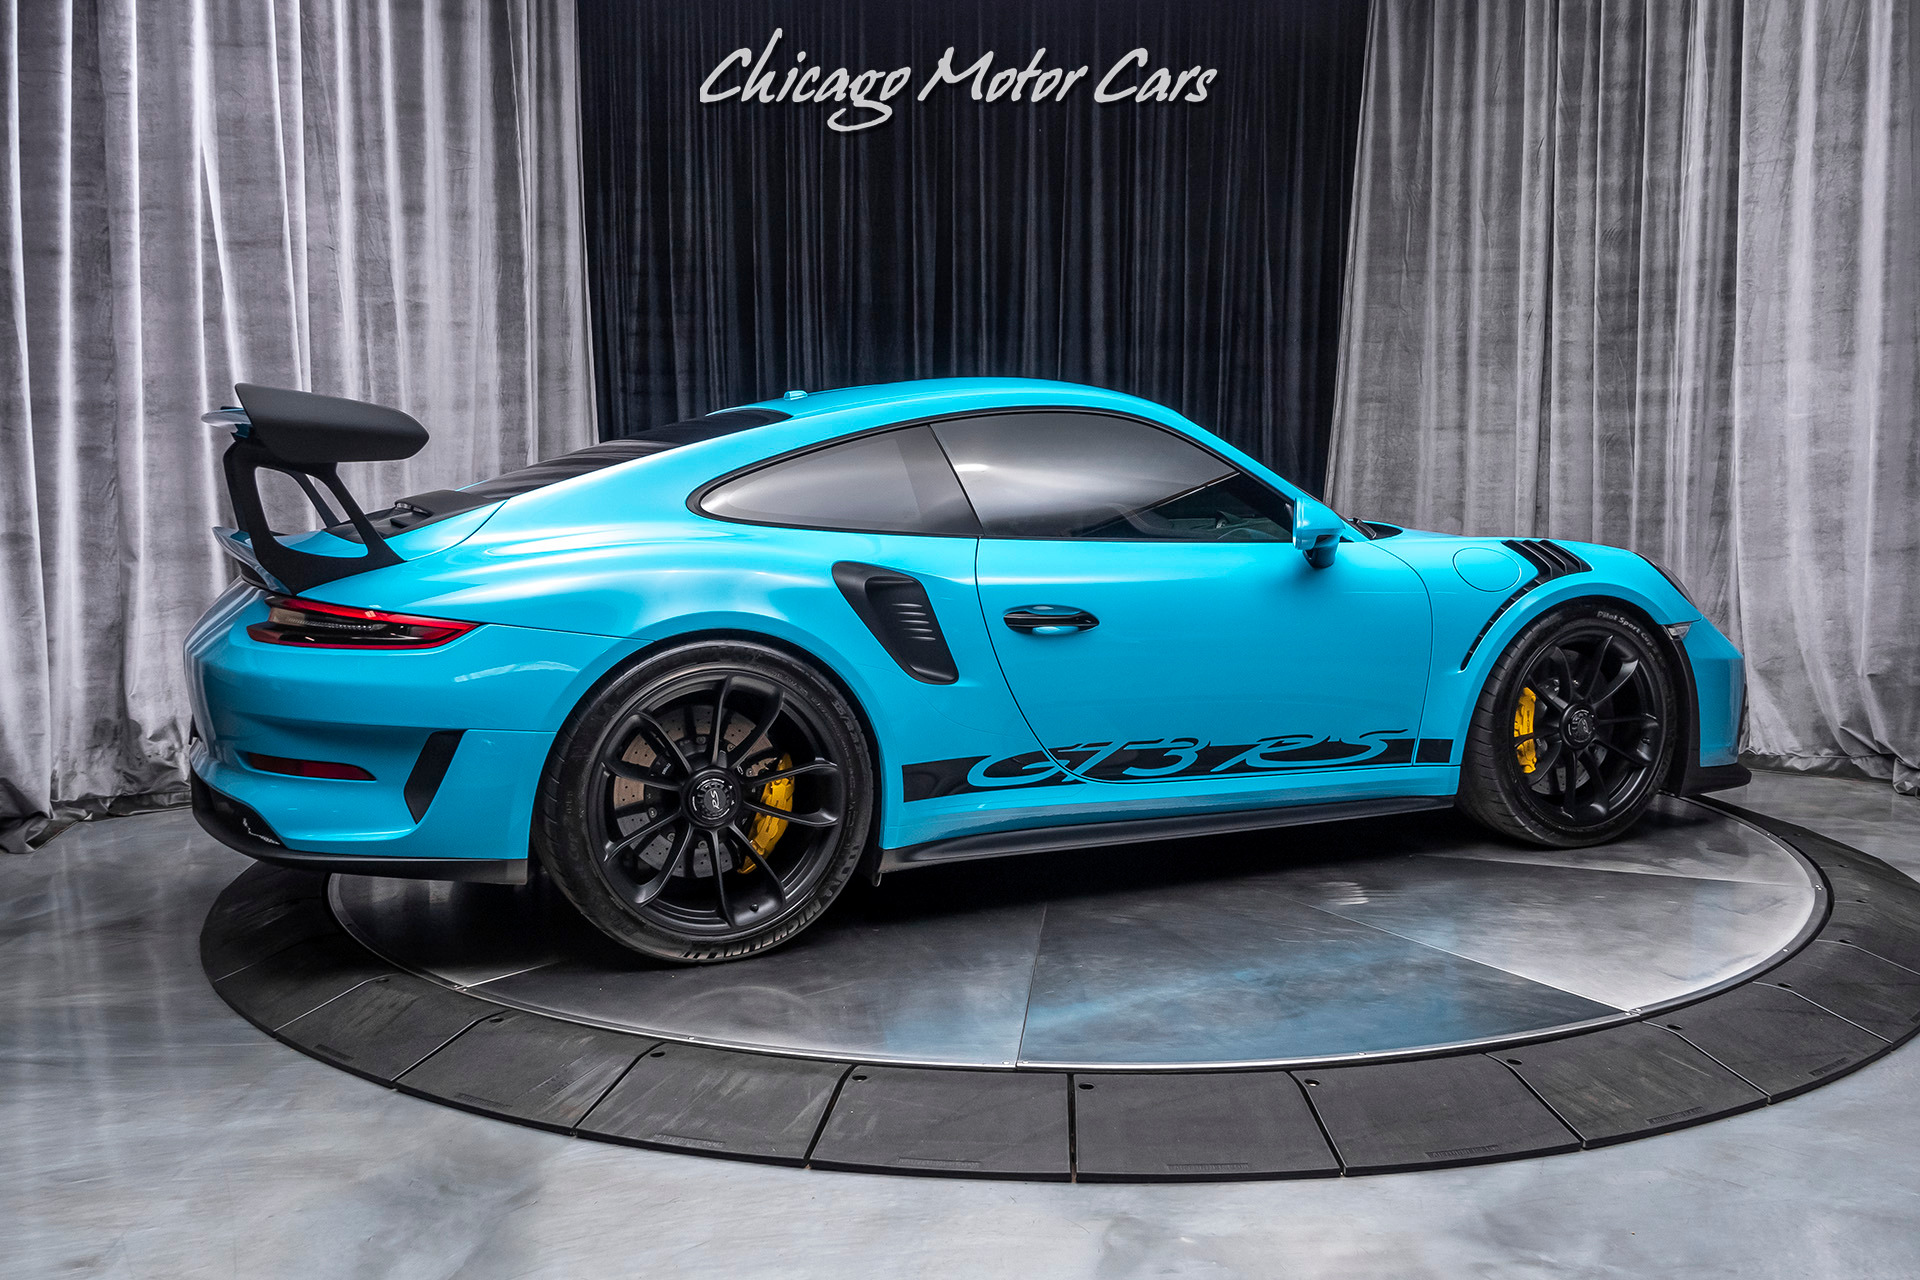 Used 2019 Porsche 911 GT3 RS Coupe - Miami Blue! Only 2800 ...